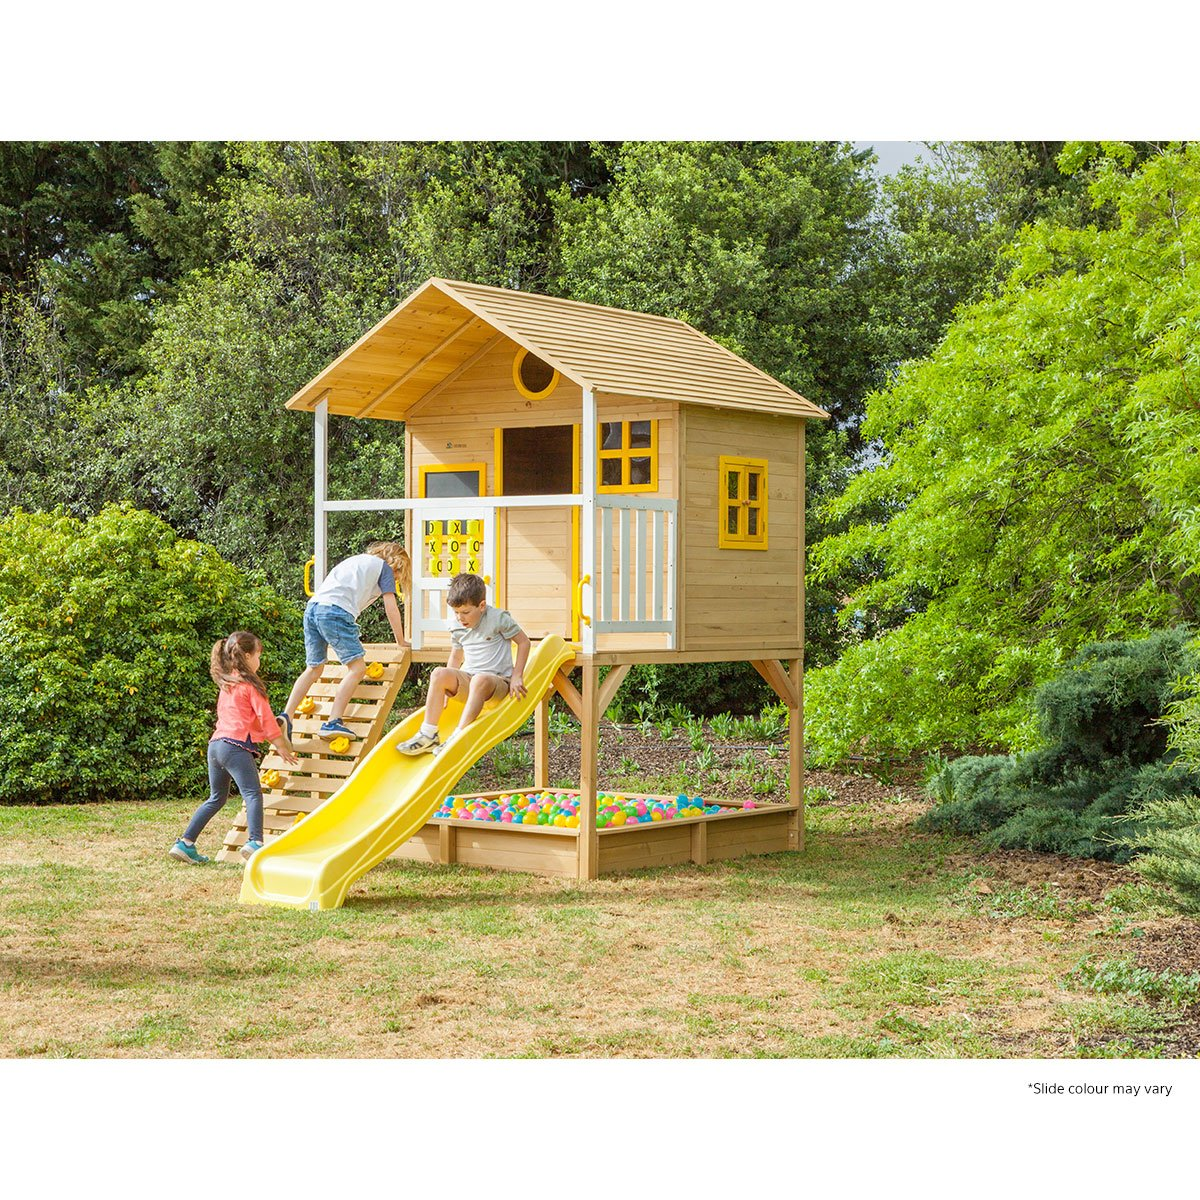 Warrigal Cubby House set- Red Slide